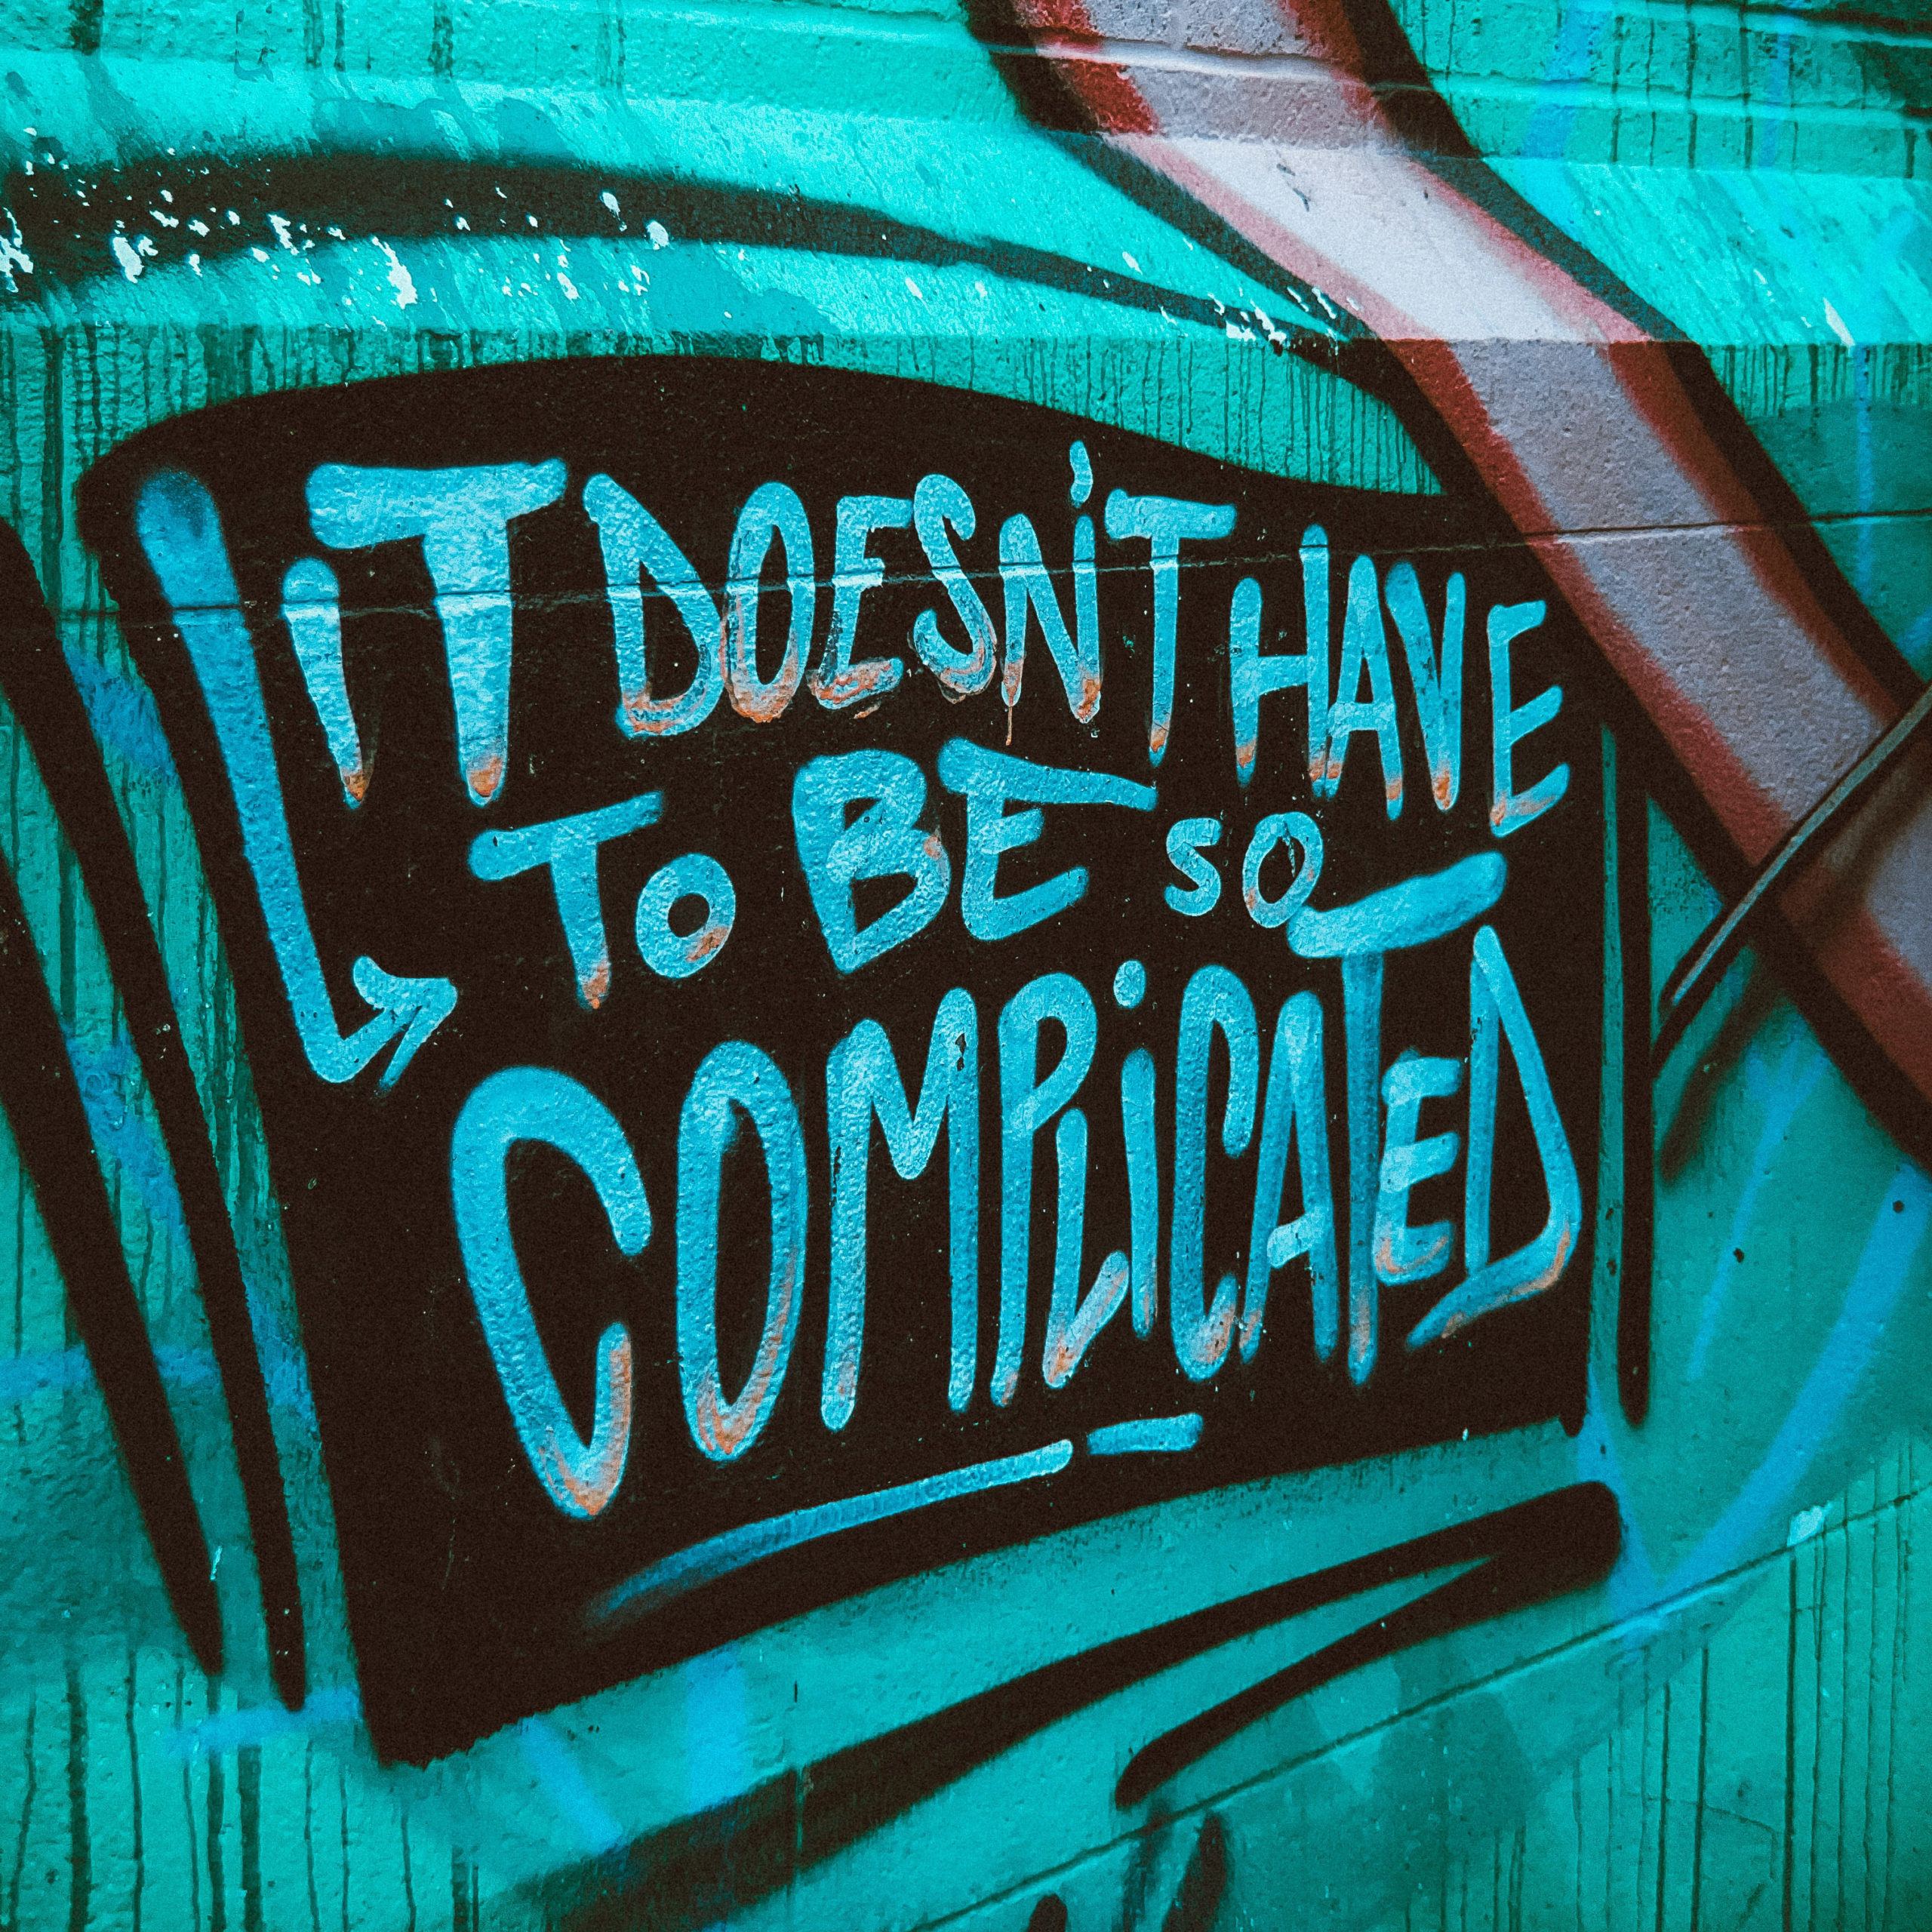 """Graffiti Mural With Message Stating """"It Doesn't Have to Be So Complicated."""""""